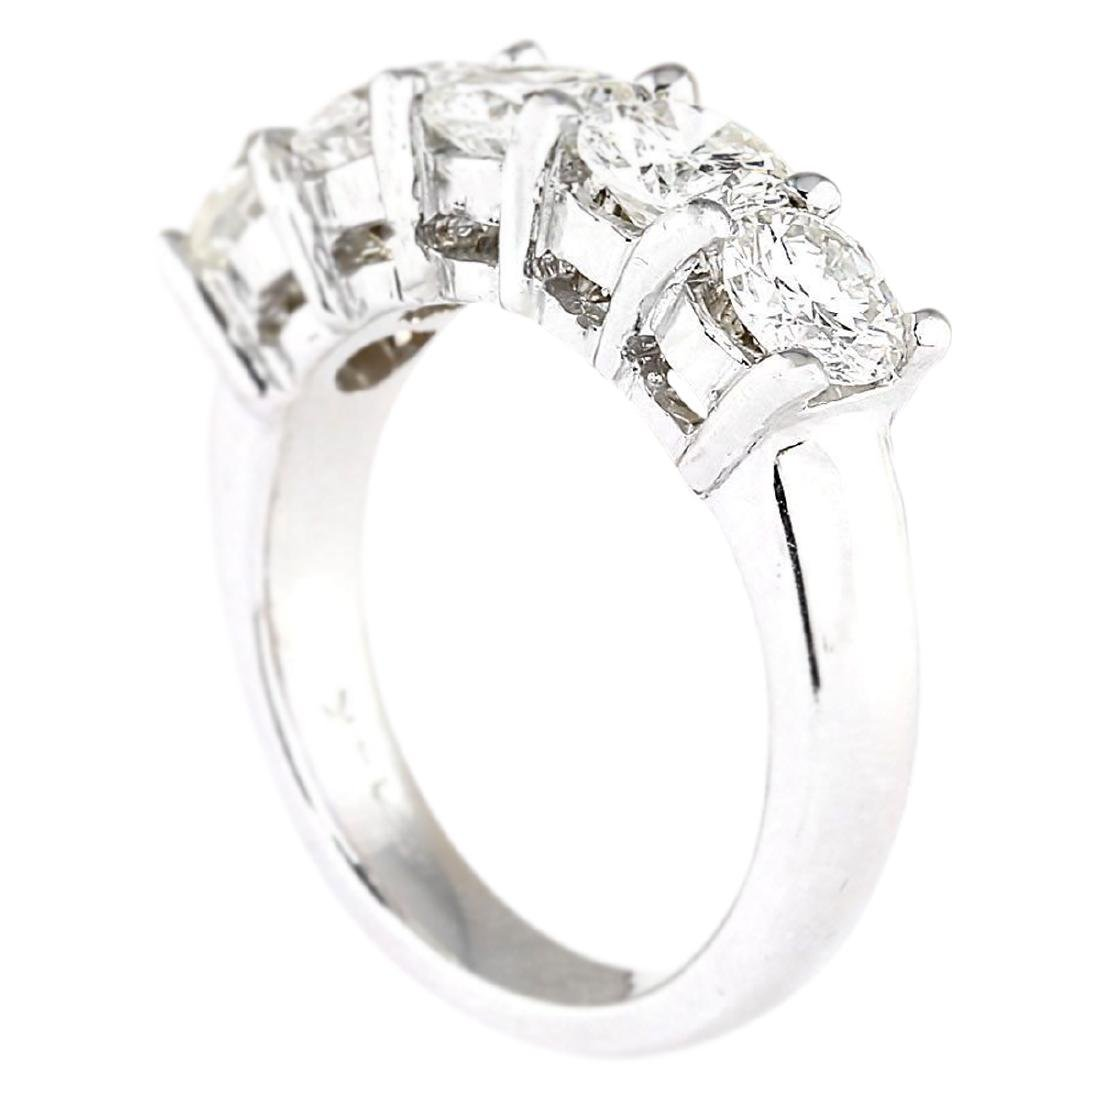 2.56 CTW Natural Diamond Ring 18K Solid White Gold - 3